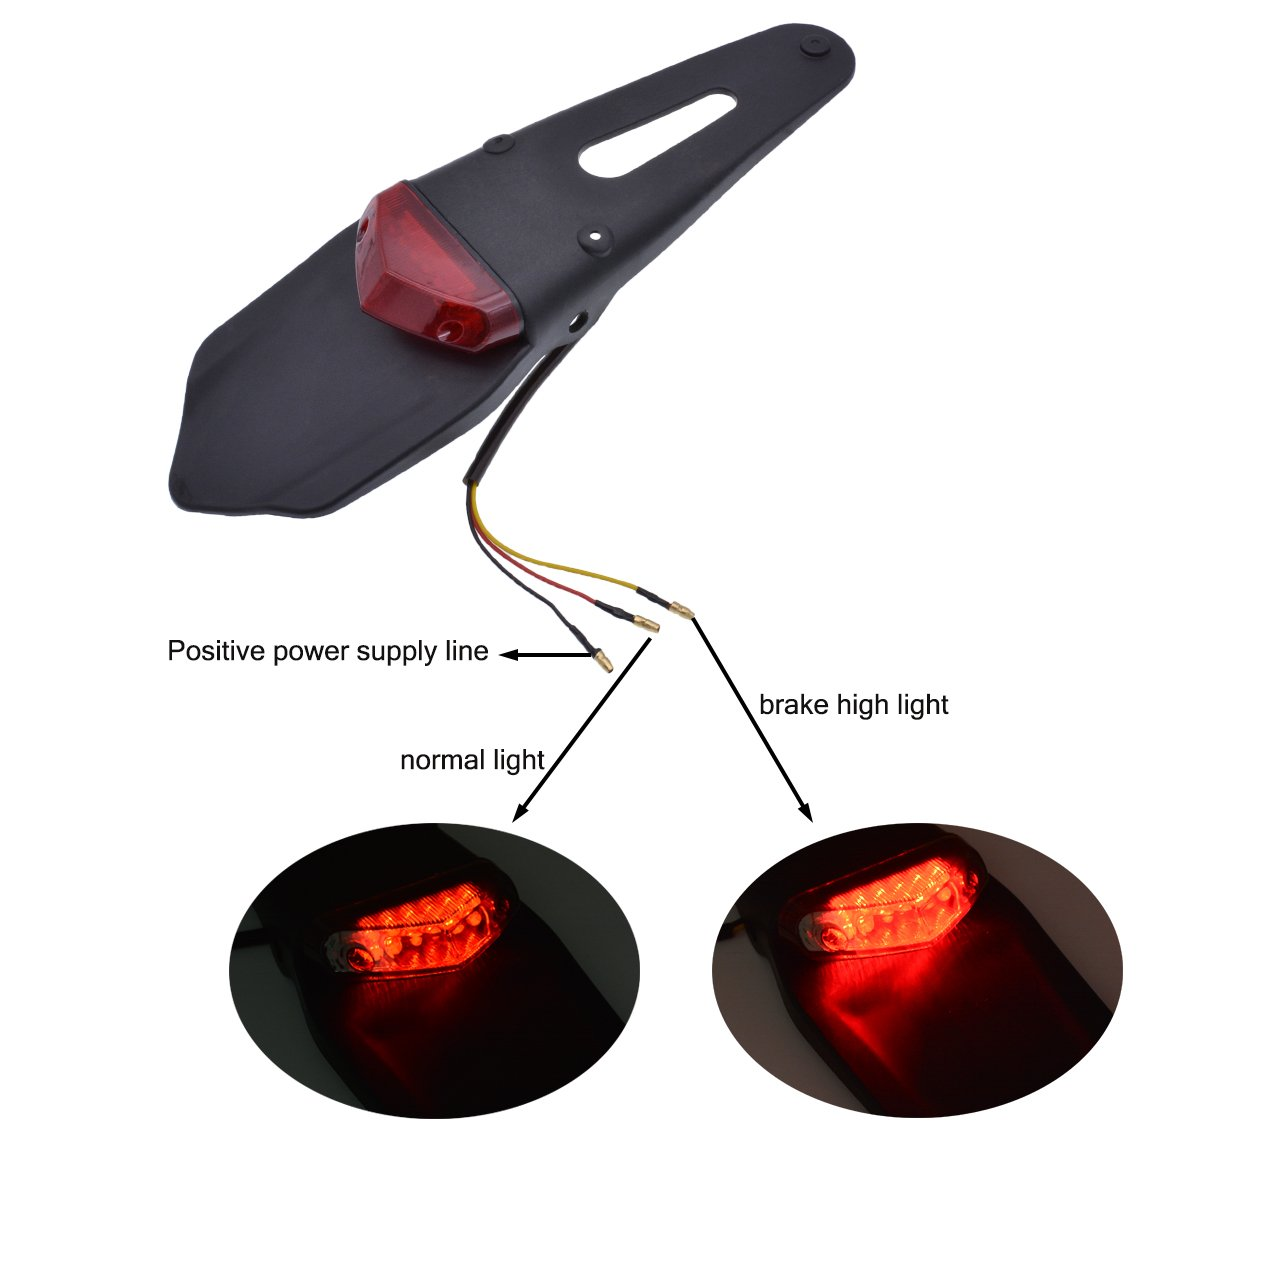 KaTur Rear Fender LED Brake Red Tail Light Lamp with Bracket for Off-Road Motorcycle Motocross Dirt Bike Clear Lens